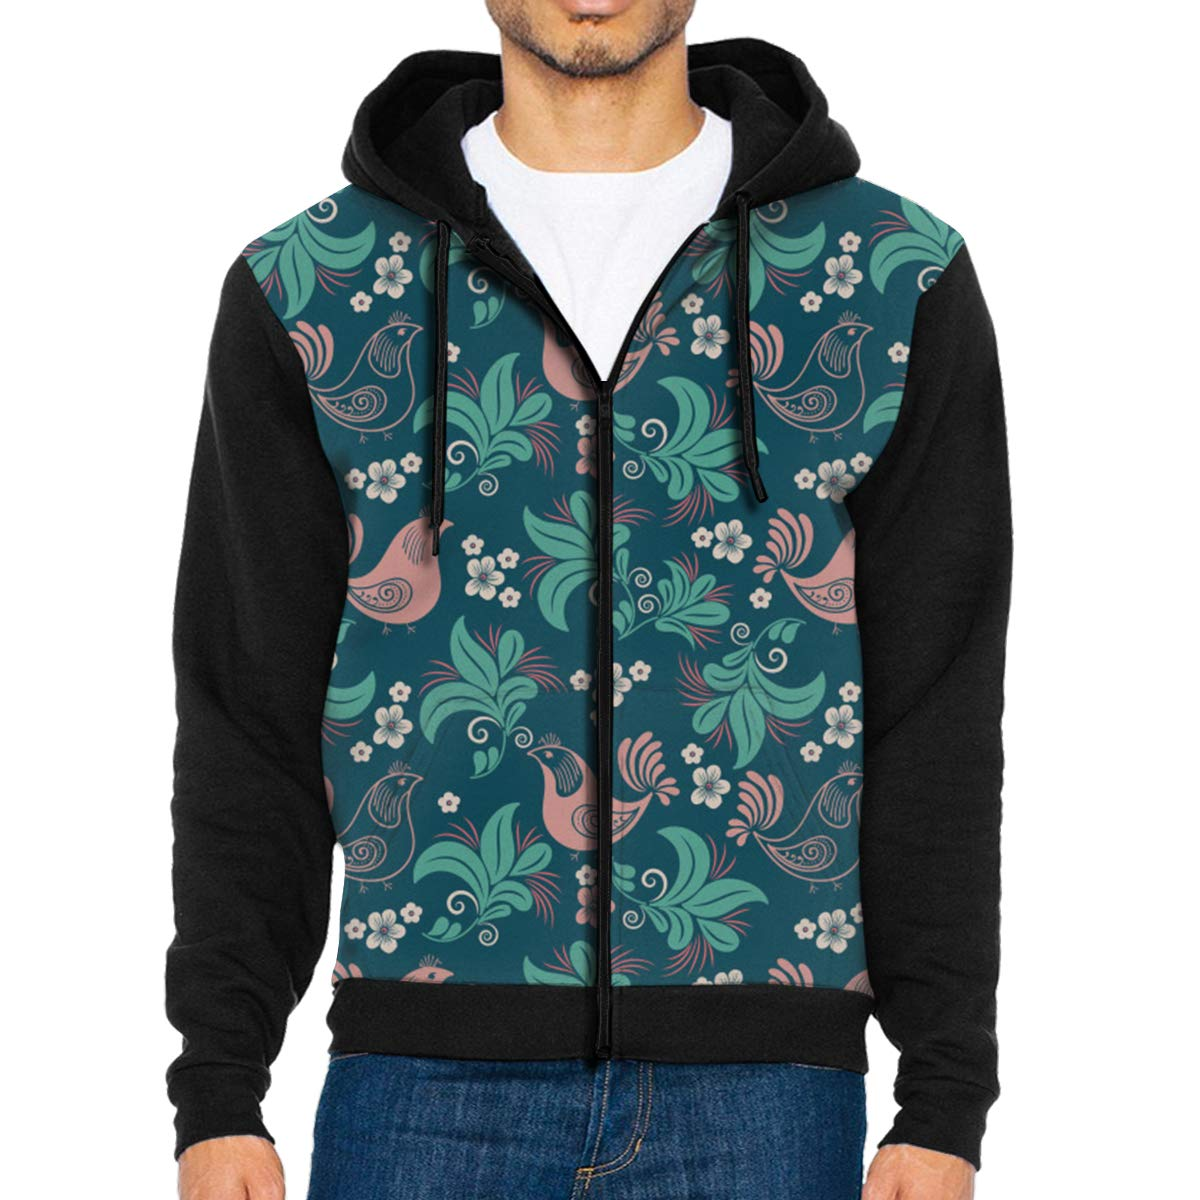 Plant Flower Bird Seamless Pattern Lightweight Mans Jacket with Hood Long Sleeved Zippered Outwear